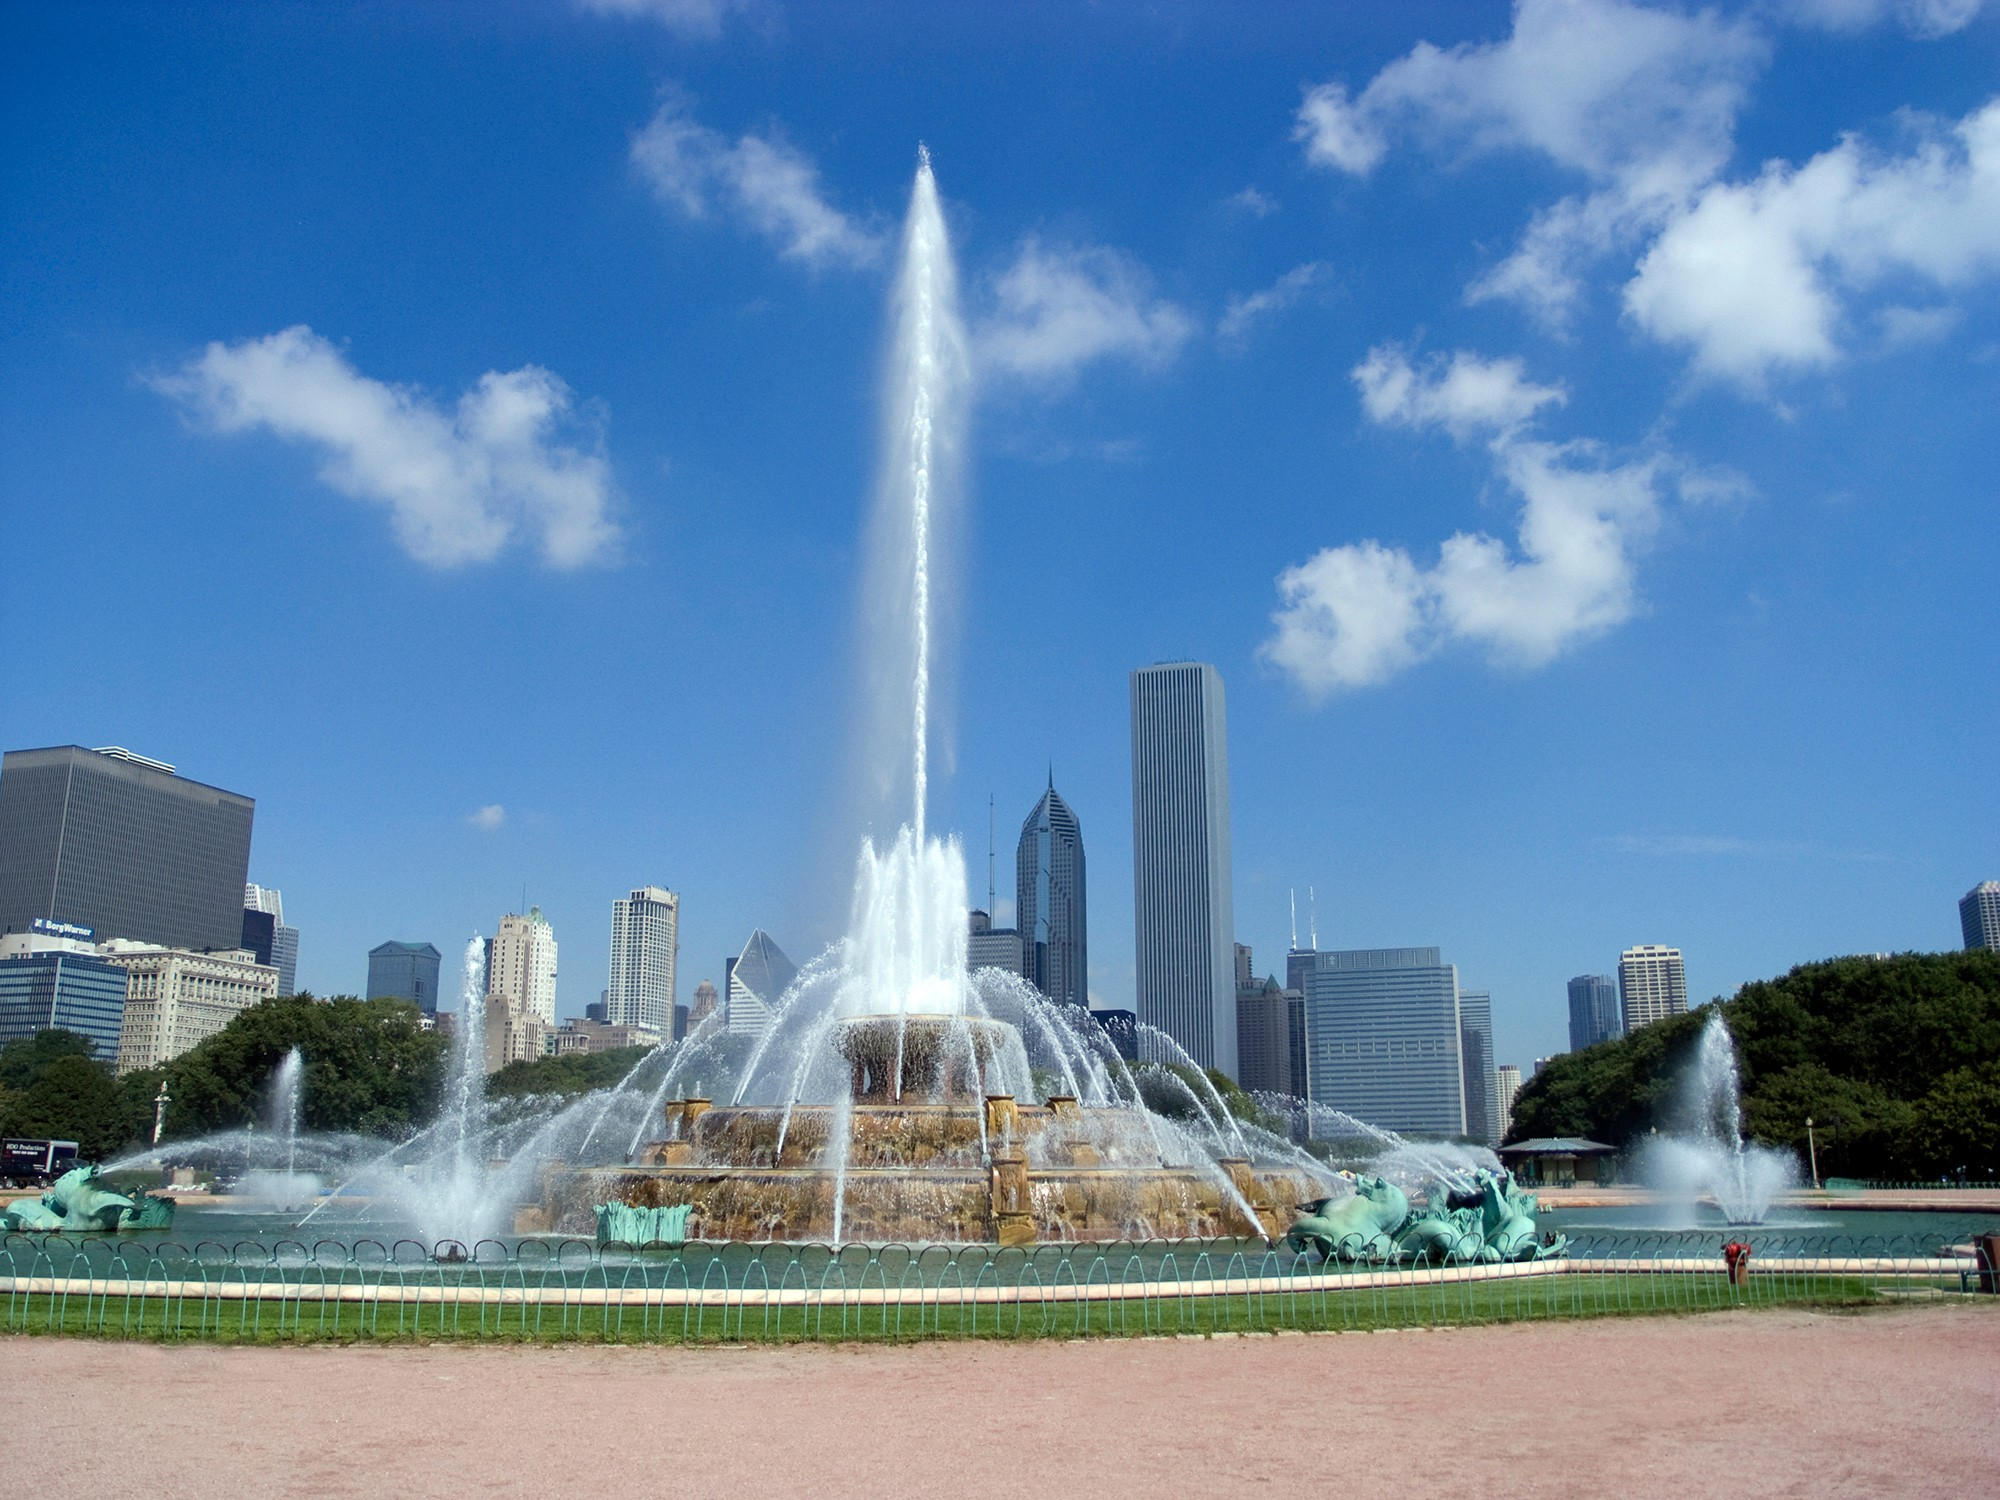 Buckingham Fountain is missing a palace in front of it though. The Americans aren't that big on royalty, if their history is any guide.